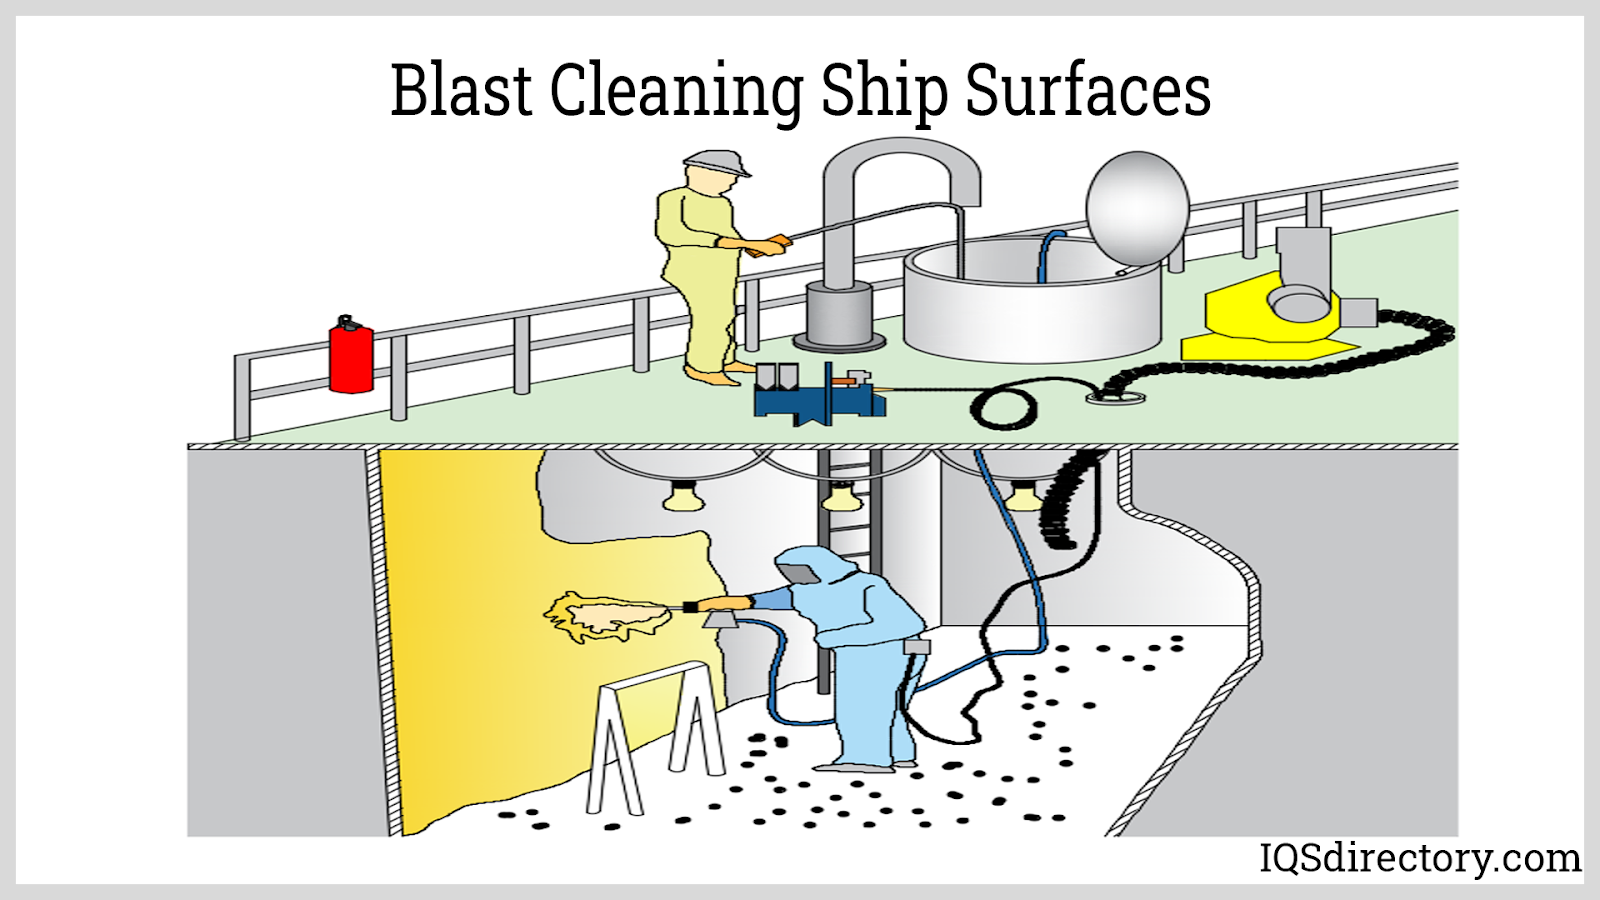 Blast Cleaning Ship Surfaces